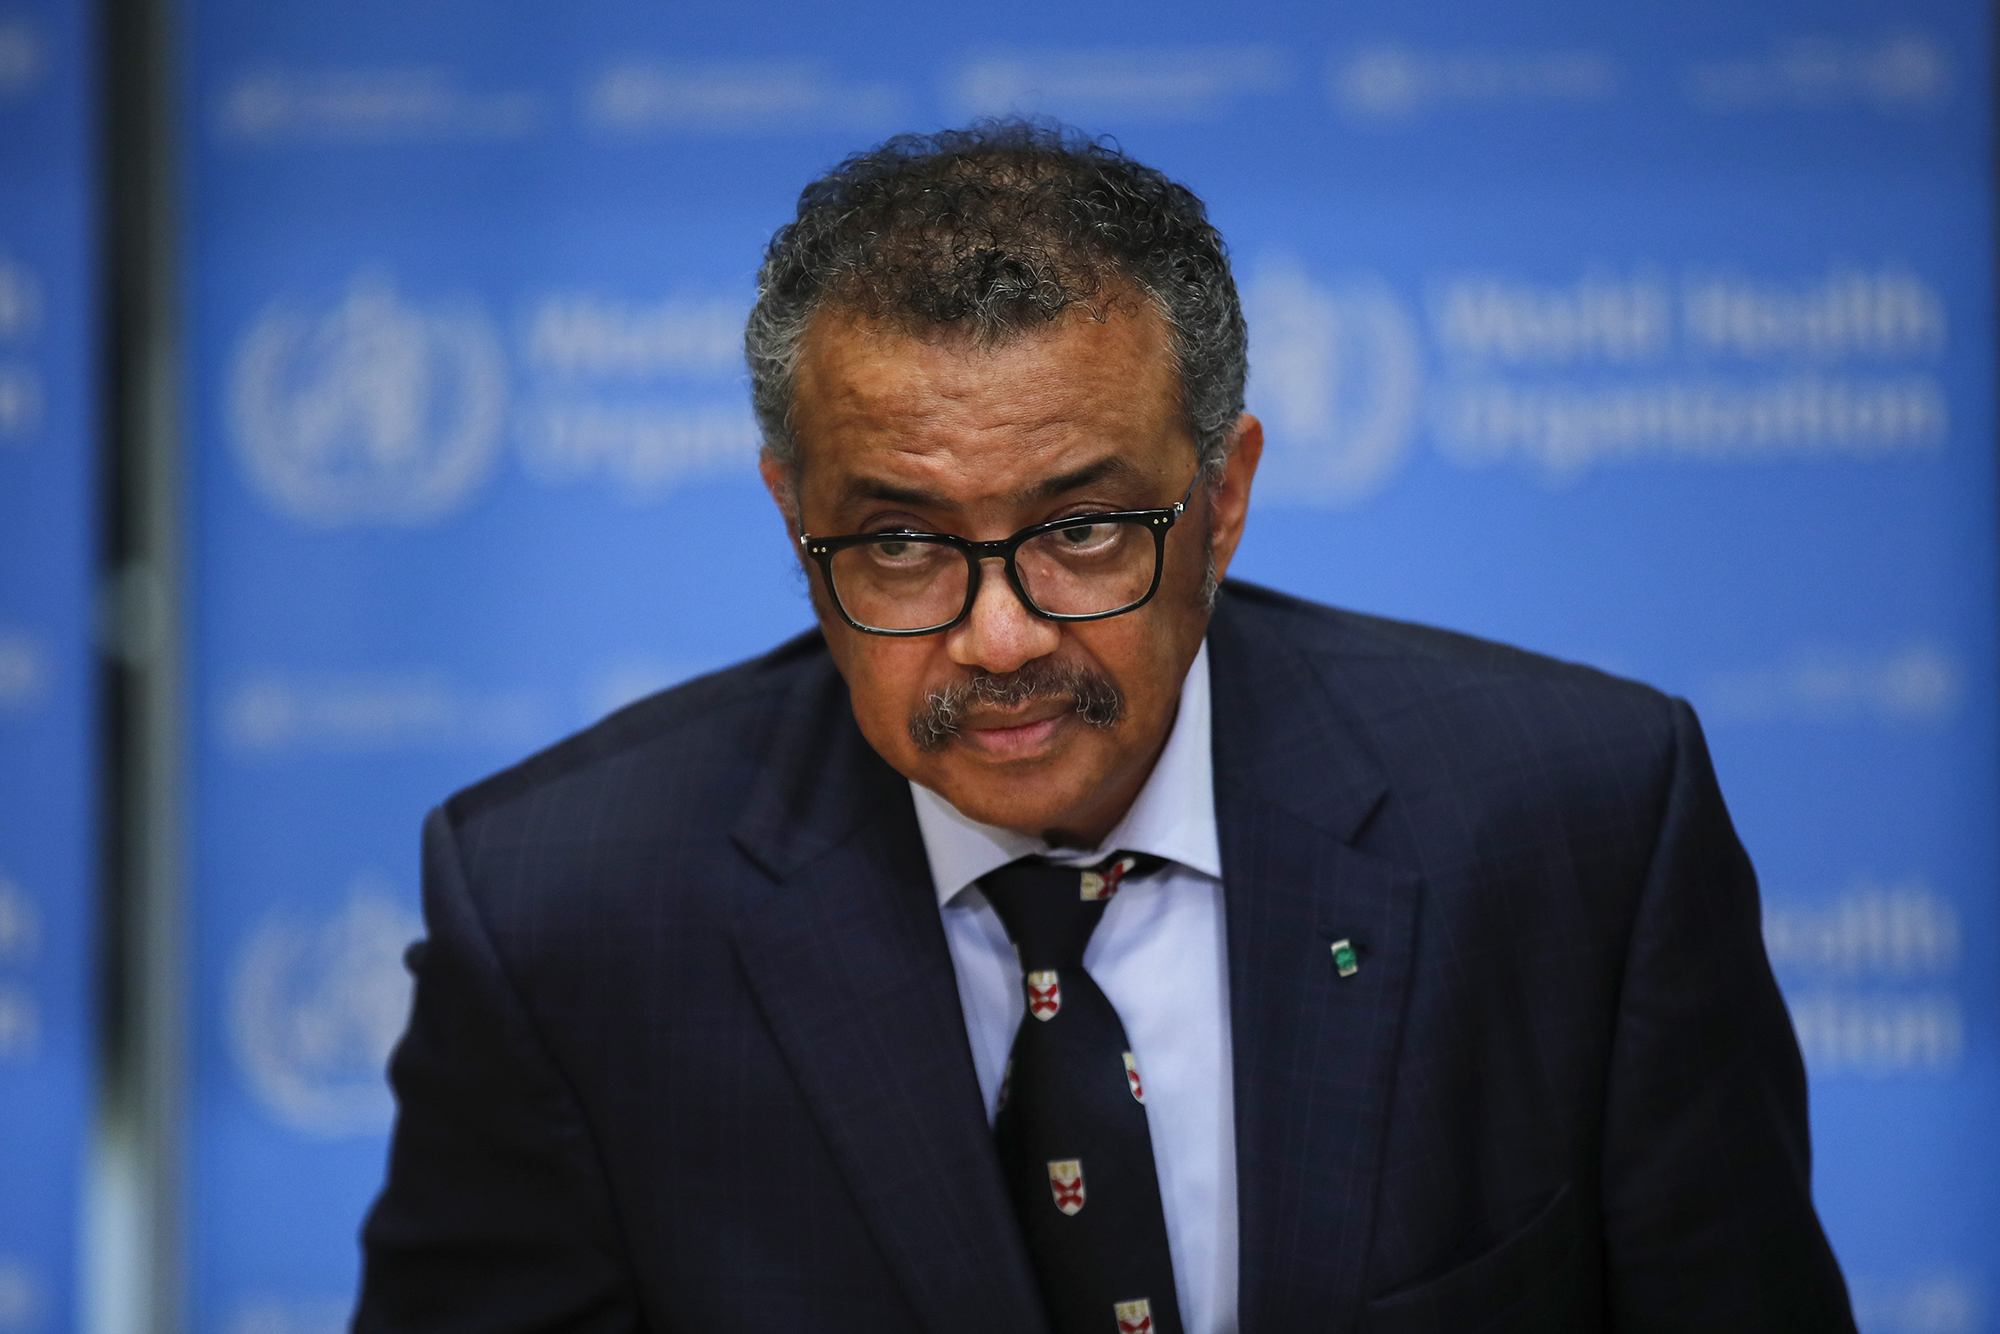 Tedros Adhanom Ghebreyesus, director general of the World Health Organization (WHO), speaks at a news conference on Tuesday, February 18.